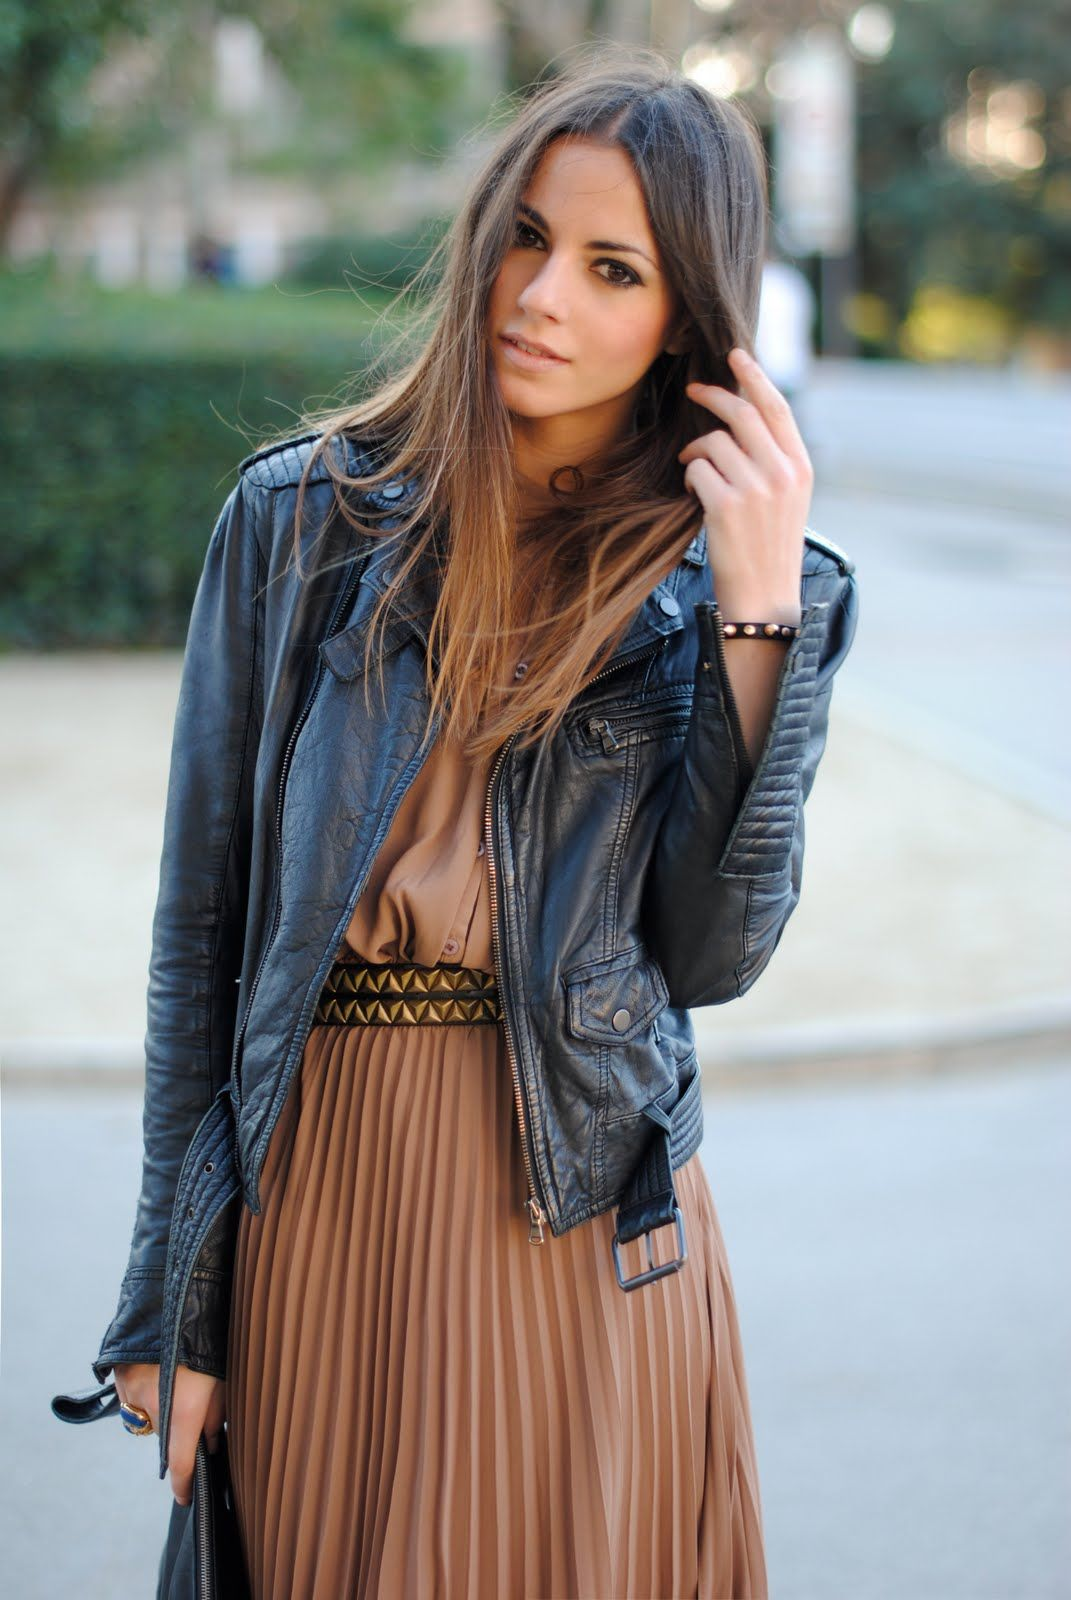 Leather and pleats